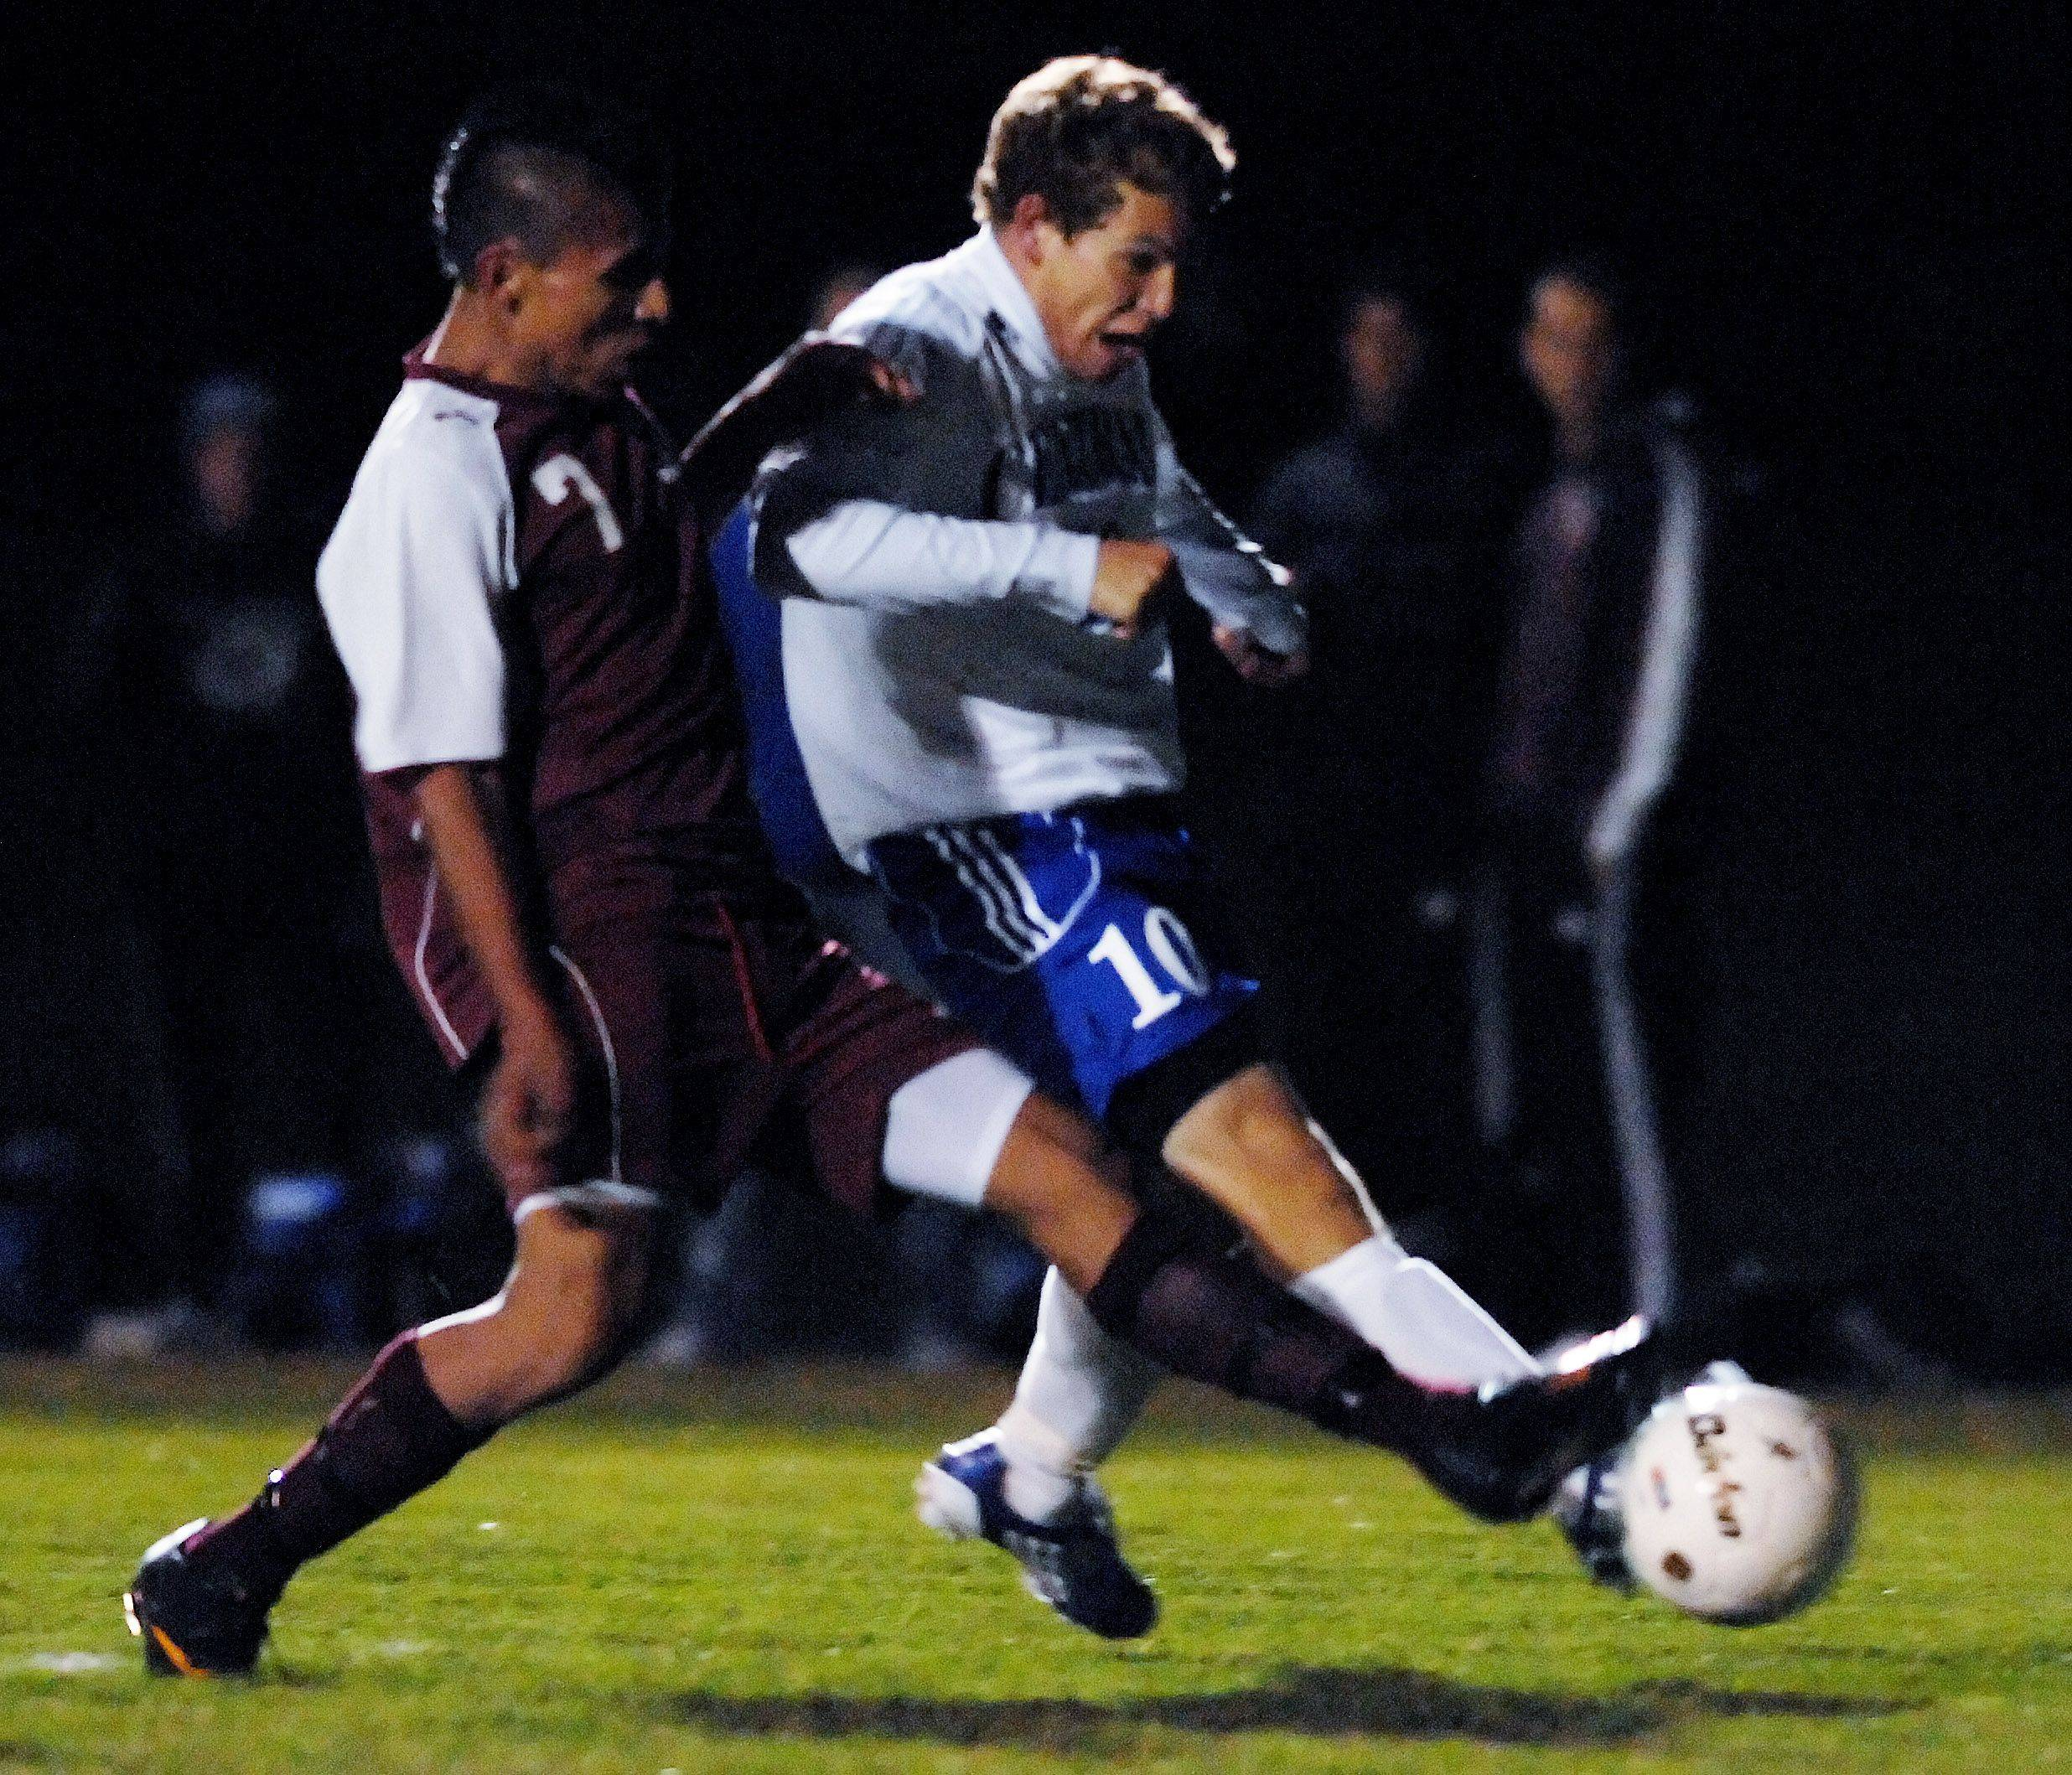 Burlington Central's Chris Gousios gets a shot off as Marengo's Frolan Matinez tries to stop him in the Hampshire regional game Tuesday. The ball rolled into the net for Gousios' third goal of the night, and the Rockets won 3-0.